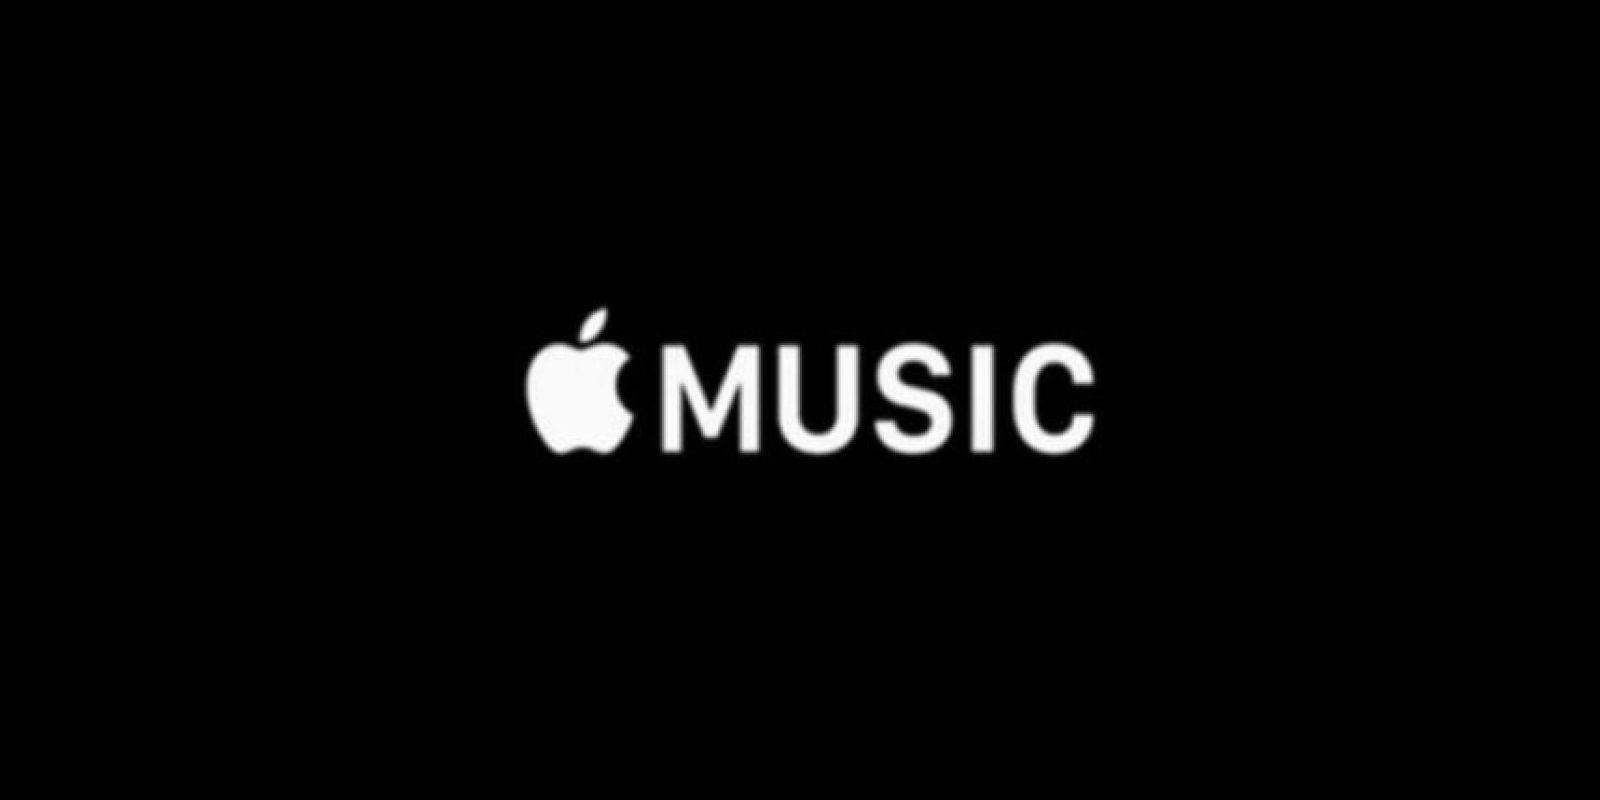 Apple Music quiere convertirse en el rey de la música en streaming. Foto: Apple